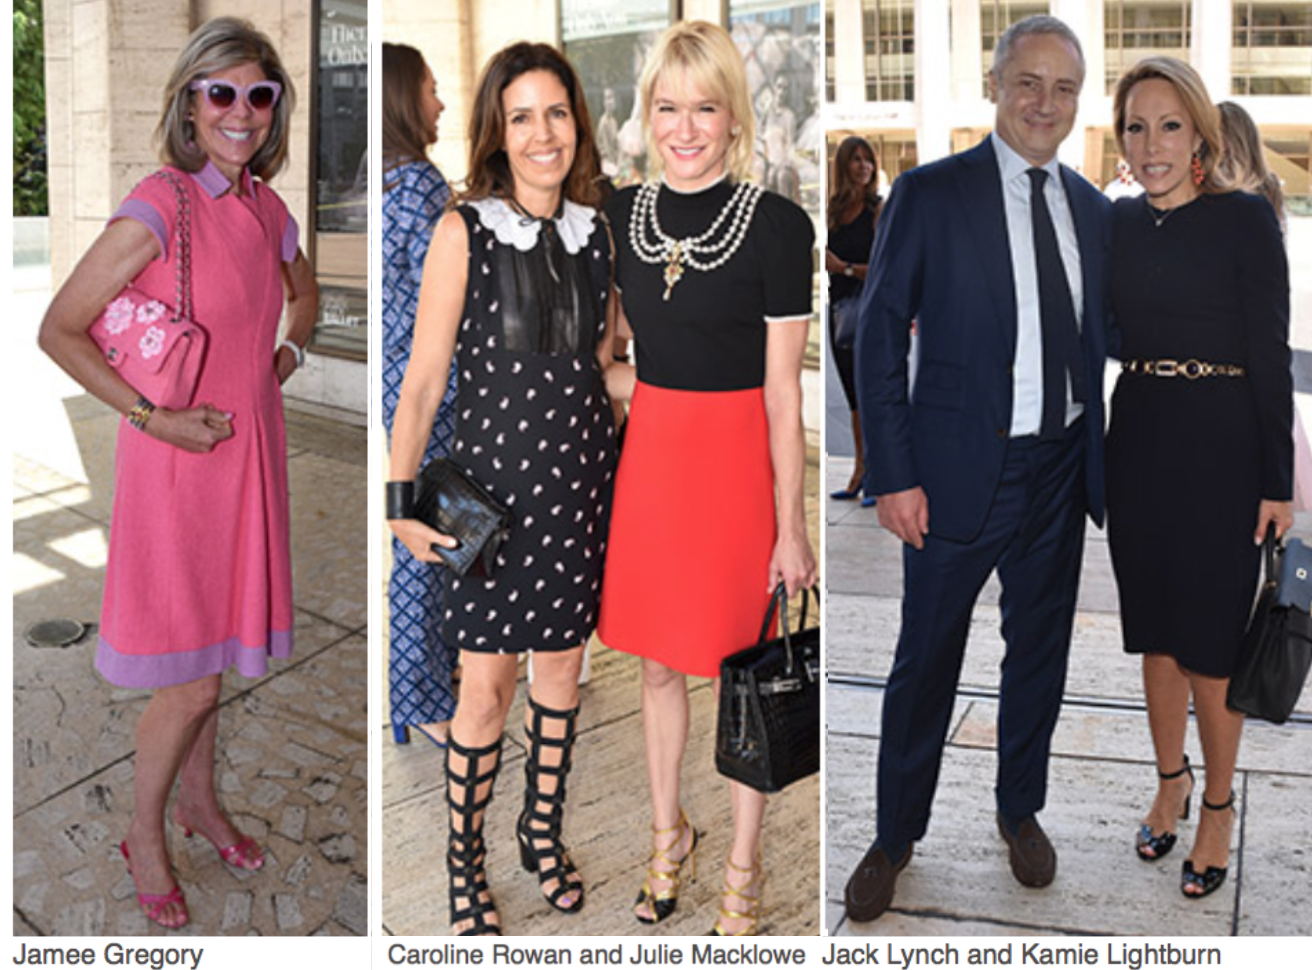 New York Fashion Week The kick-off to this week-long revelry of style and commerce is The Couture Council Luncheon and Award for the Artistry of Fashion.  Jamee Gregory, Caroline Rowan Julie Macklowe, Jack Lynch, Kamie Lightburn